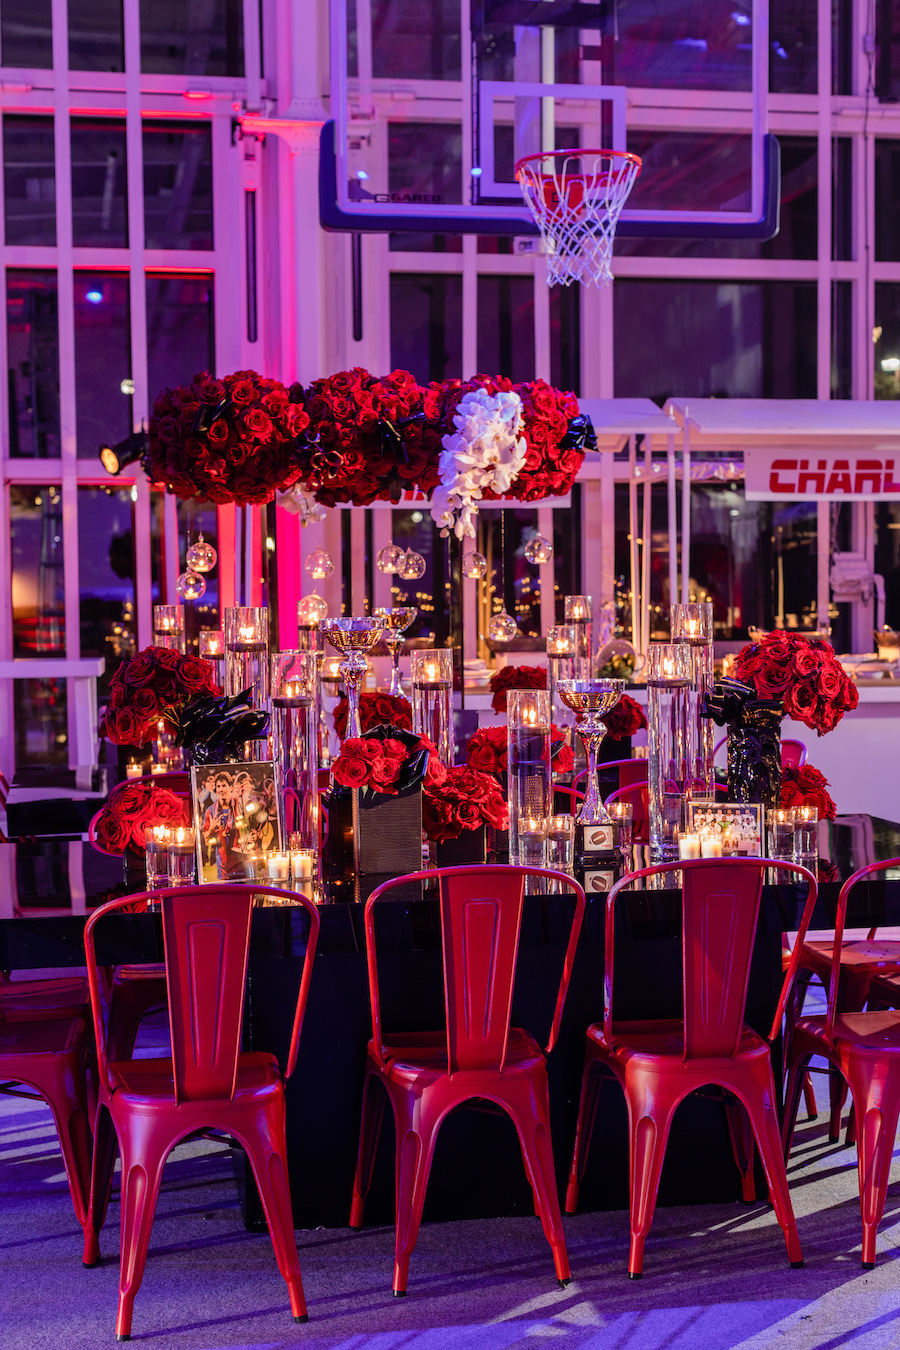 table decor with red chairs and red roses at bar mitzvah